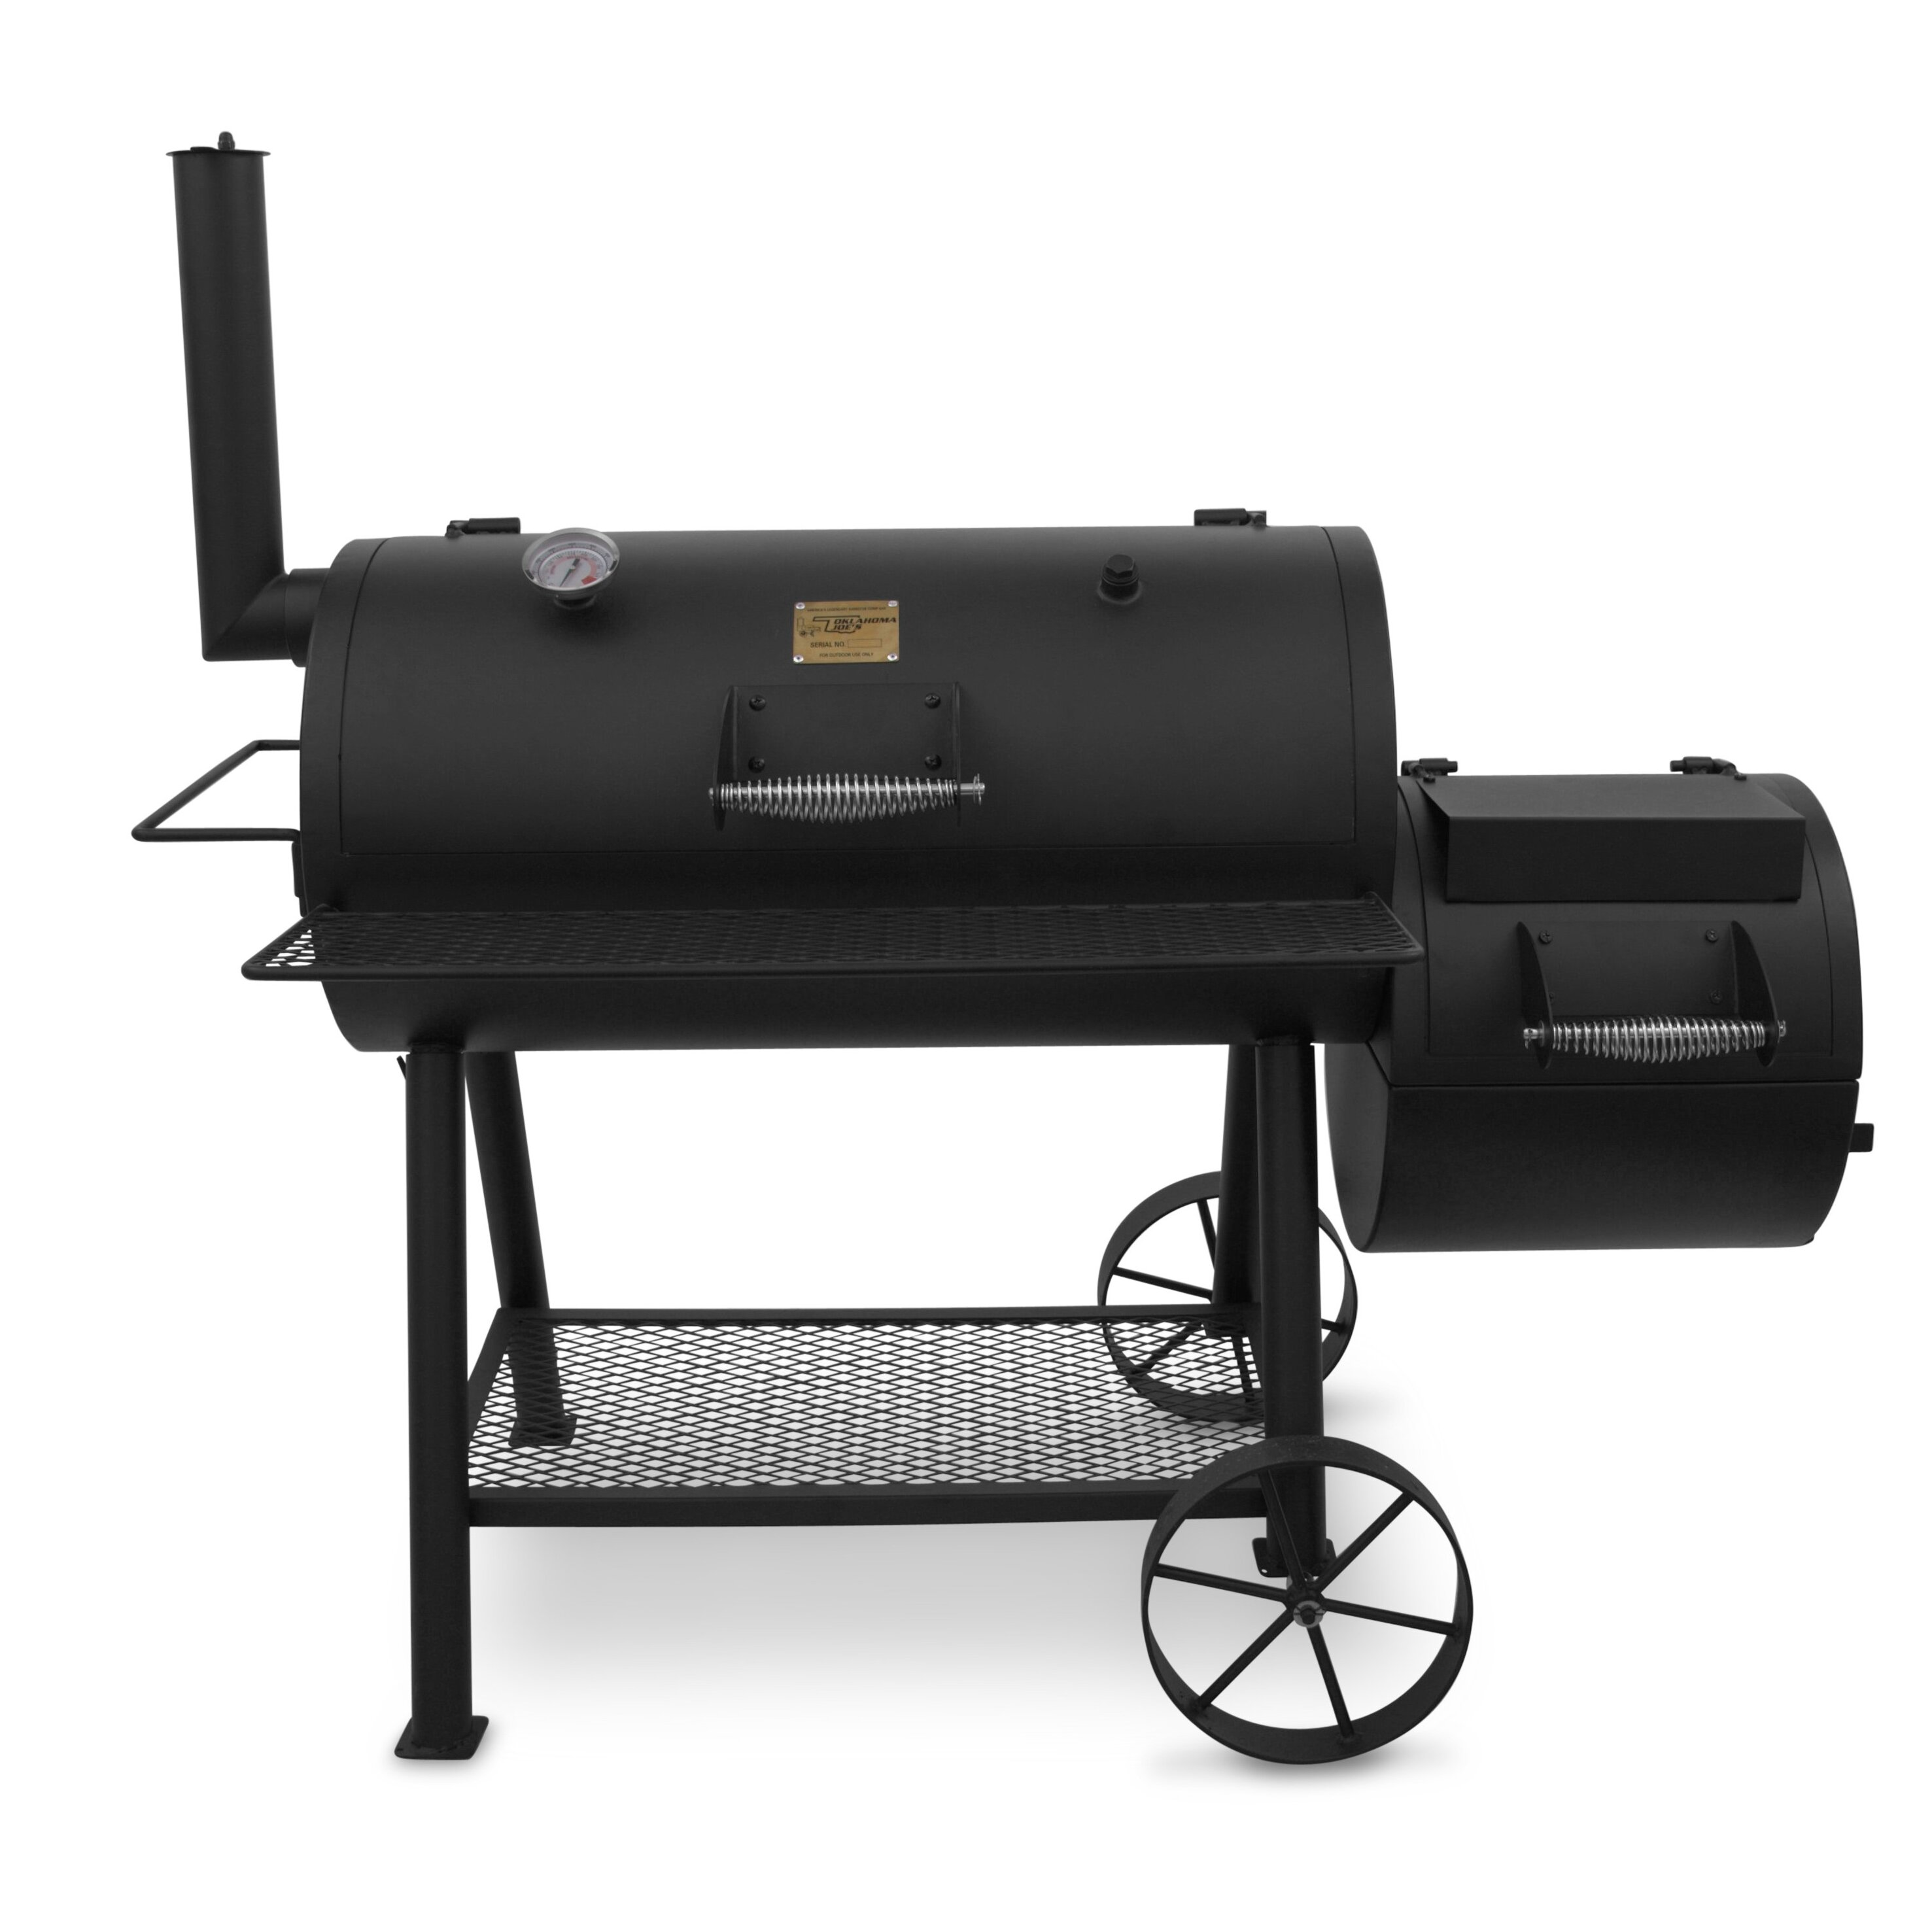 charbroil oklahoma joe 39 s highland offset charcoal smoker and grill reviews. Black Bedroom Furniture Sets. Home Design Ideas